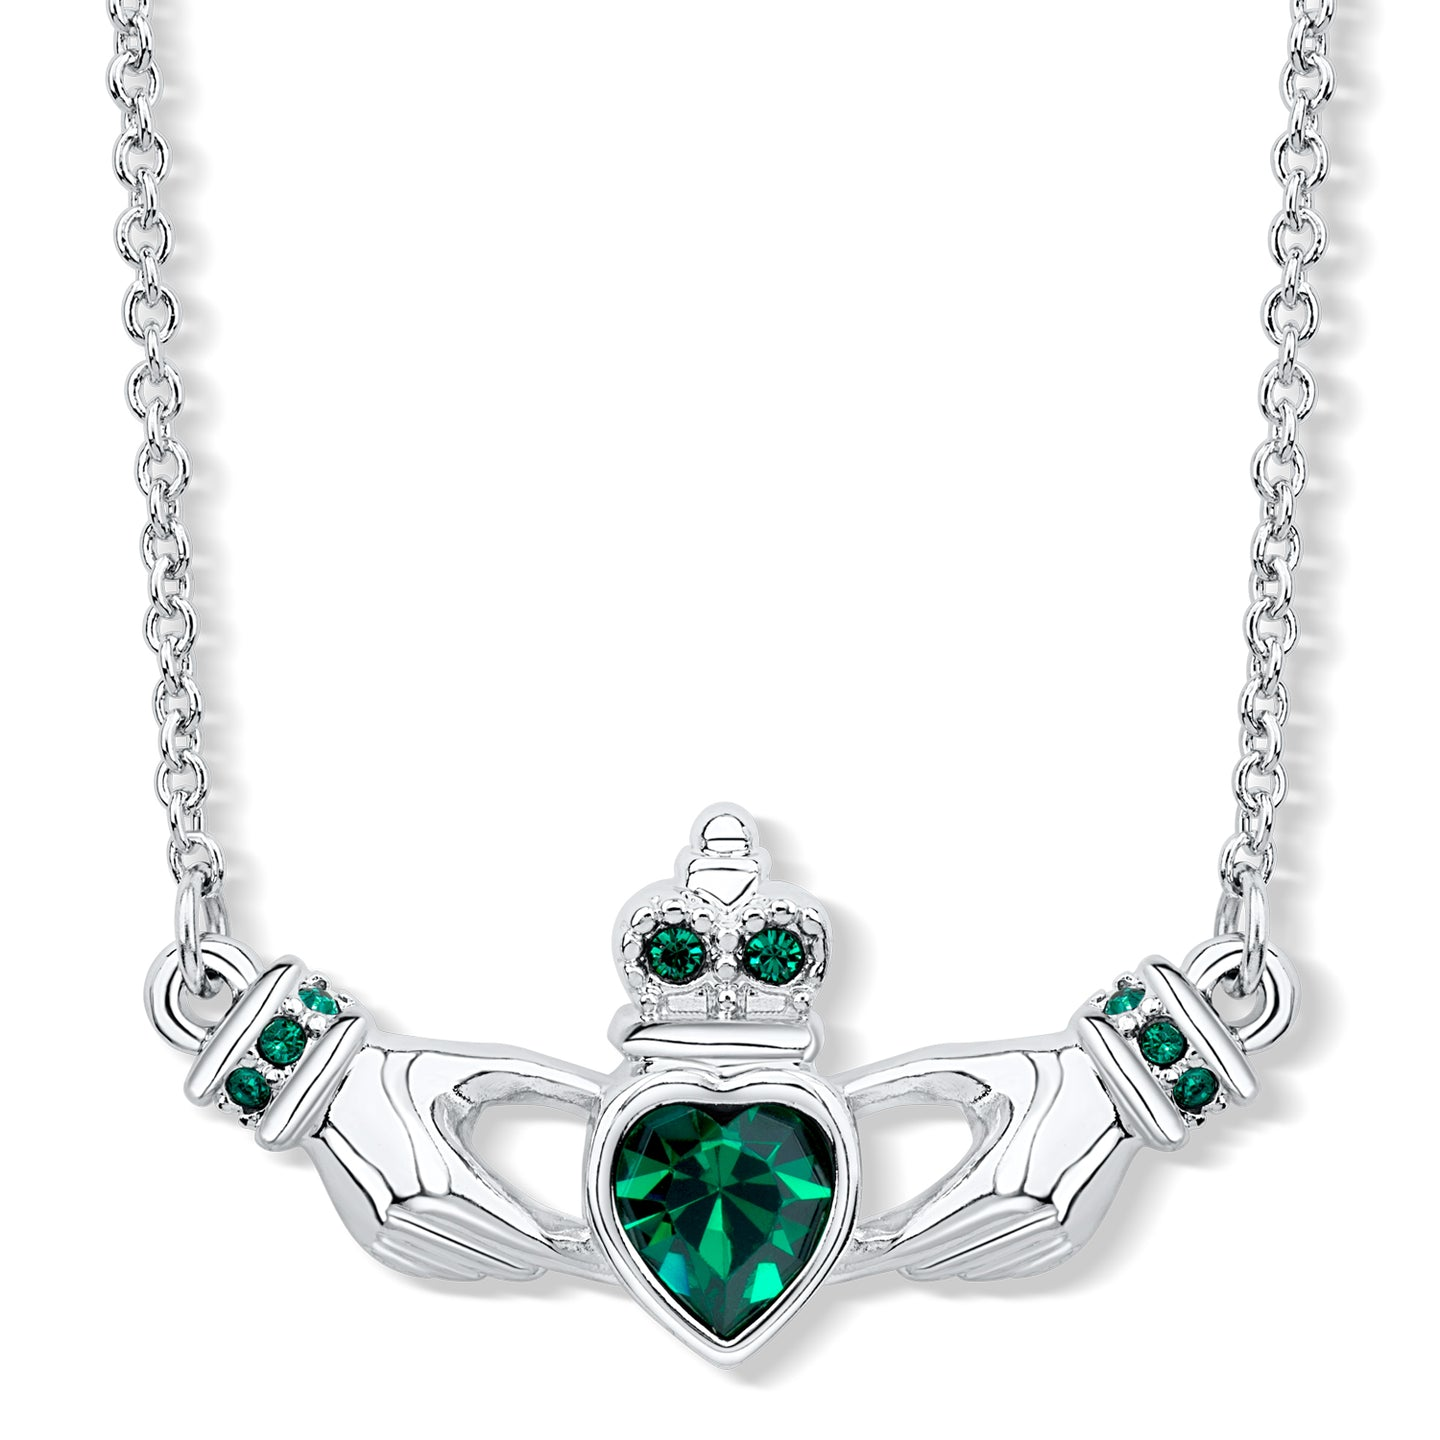 Claddagh Necklace with Emerald Crystals